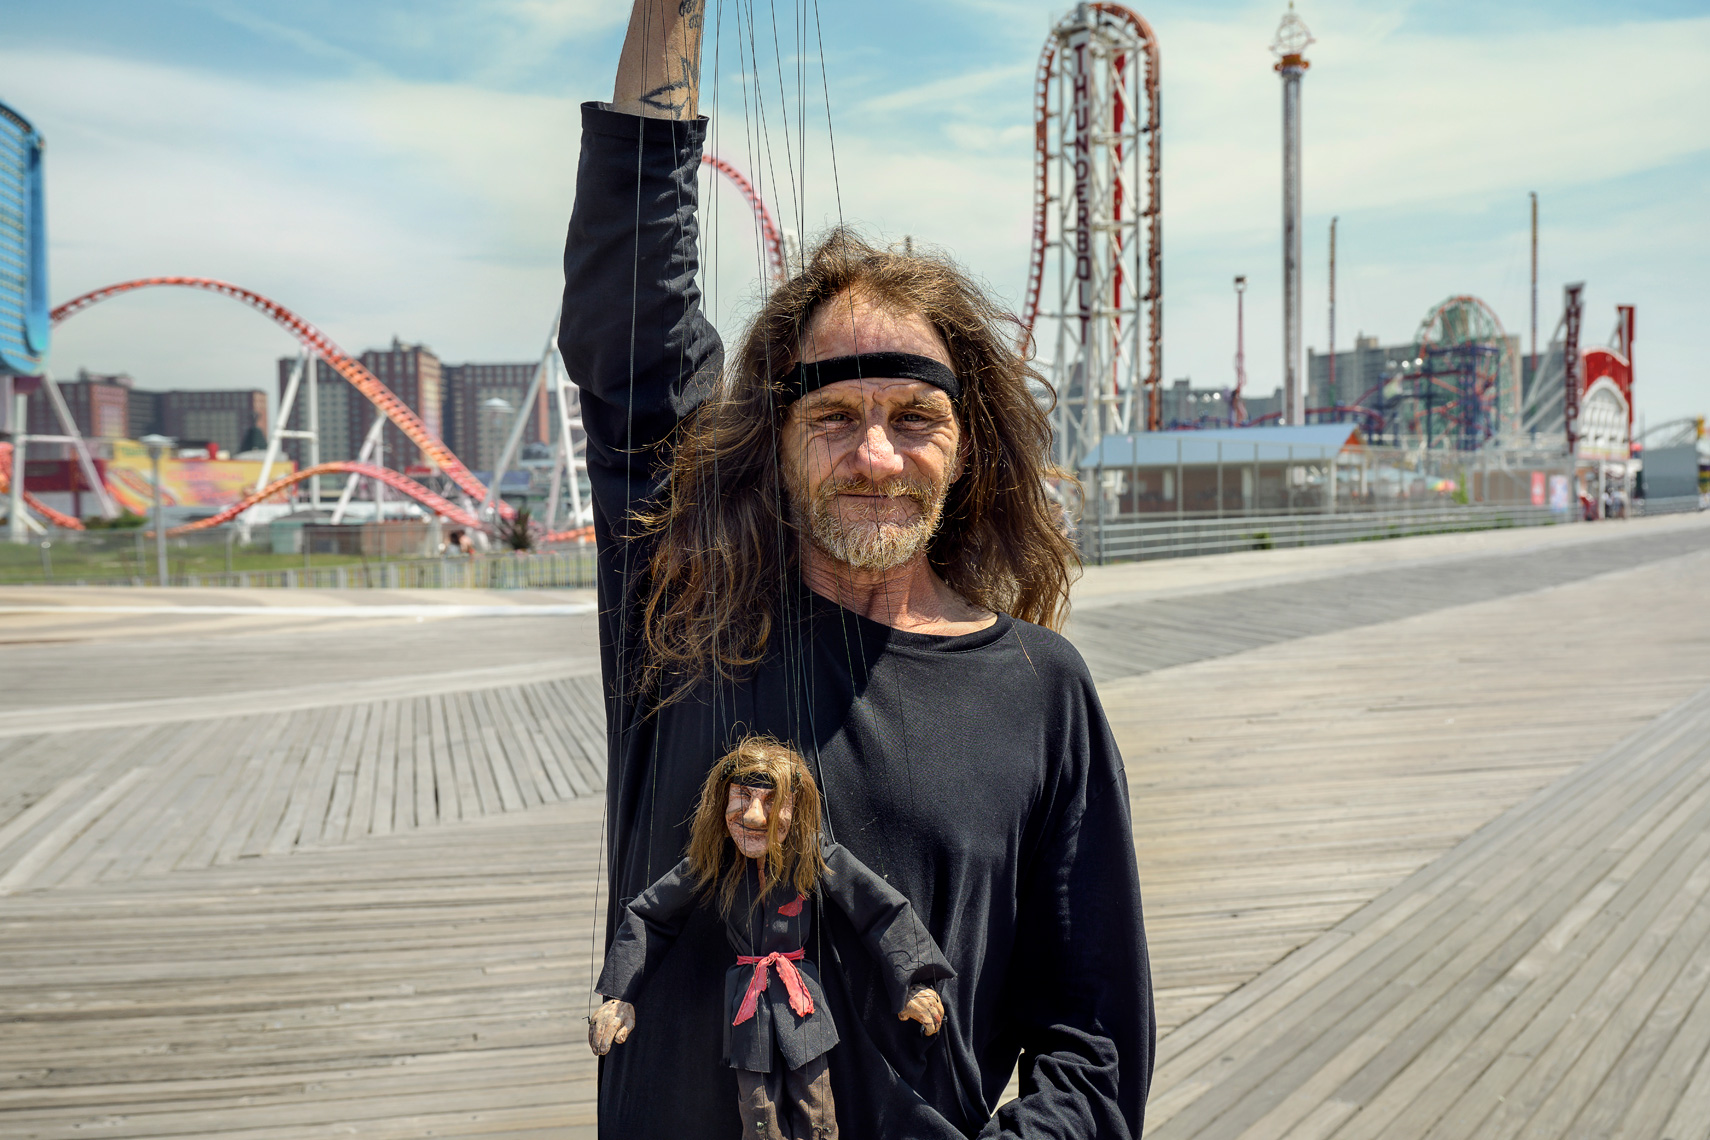 Larry The Birdman and his marionette